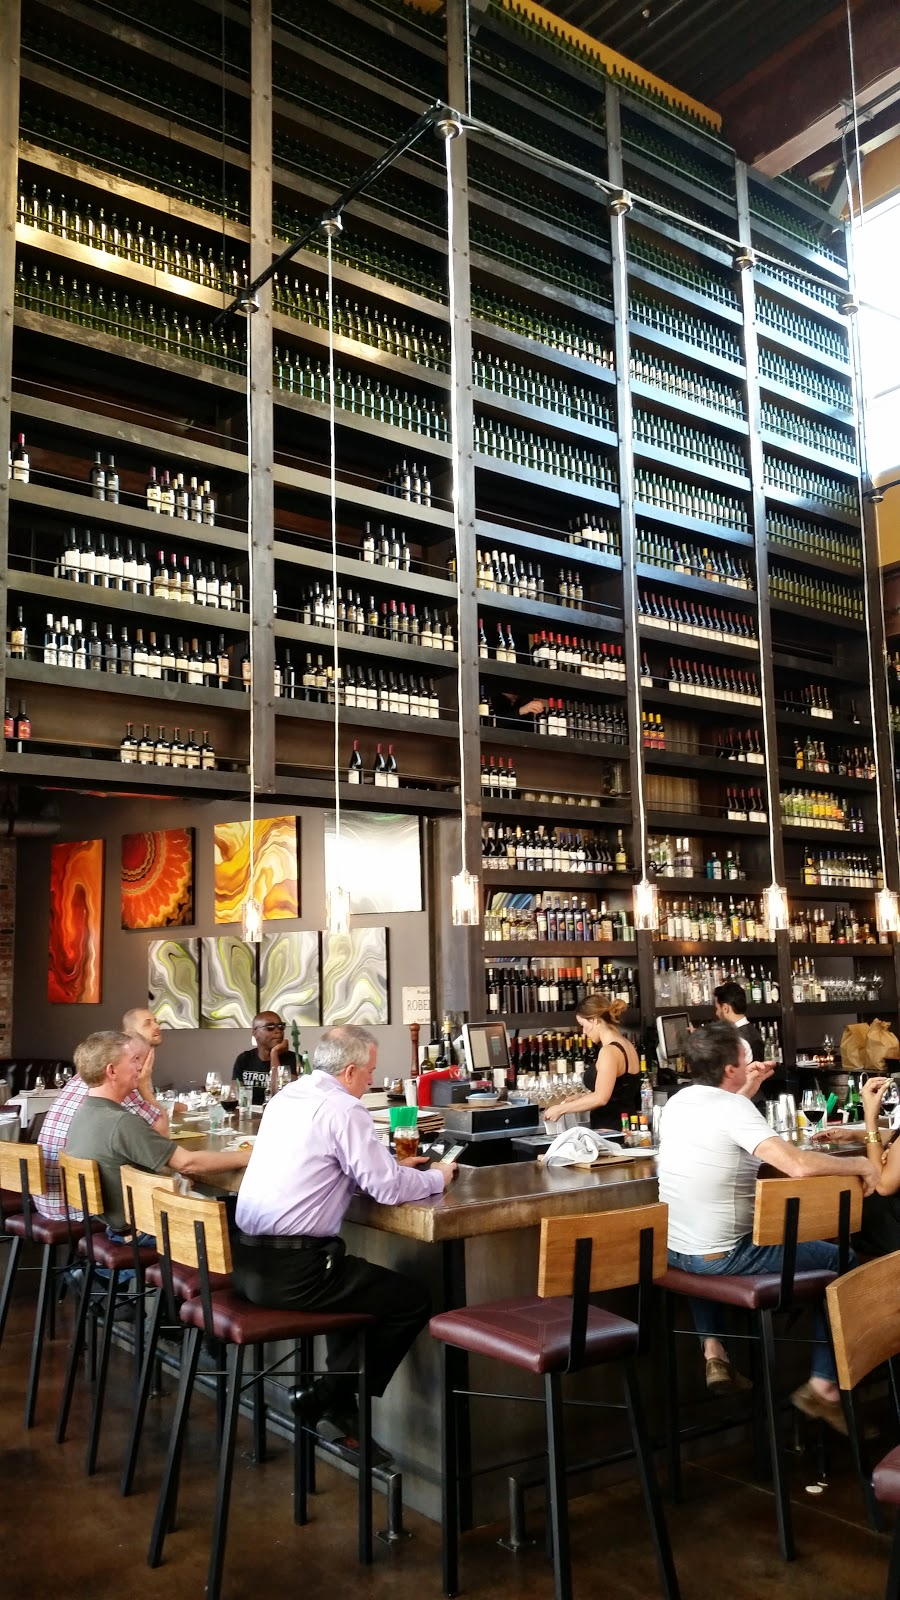 Today I Want To Do A Short Review Of The Grape Street Cafe Wine Bar Cellar Http Gtreetvegas Which Is Located At 2120 Festival Plaza Drive